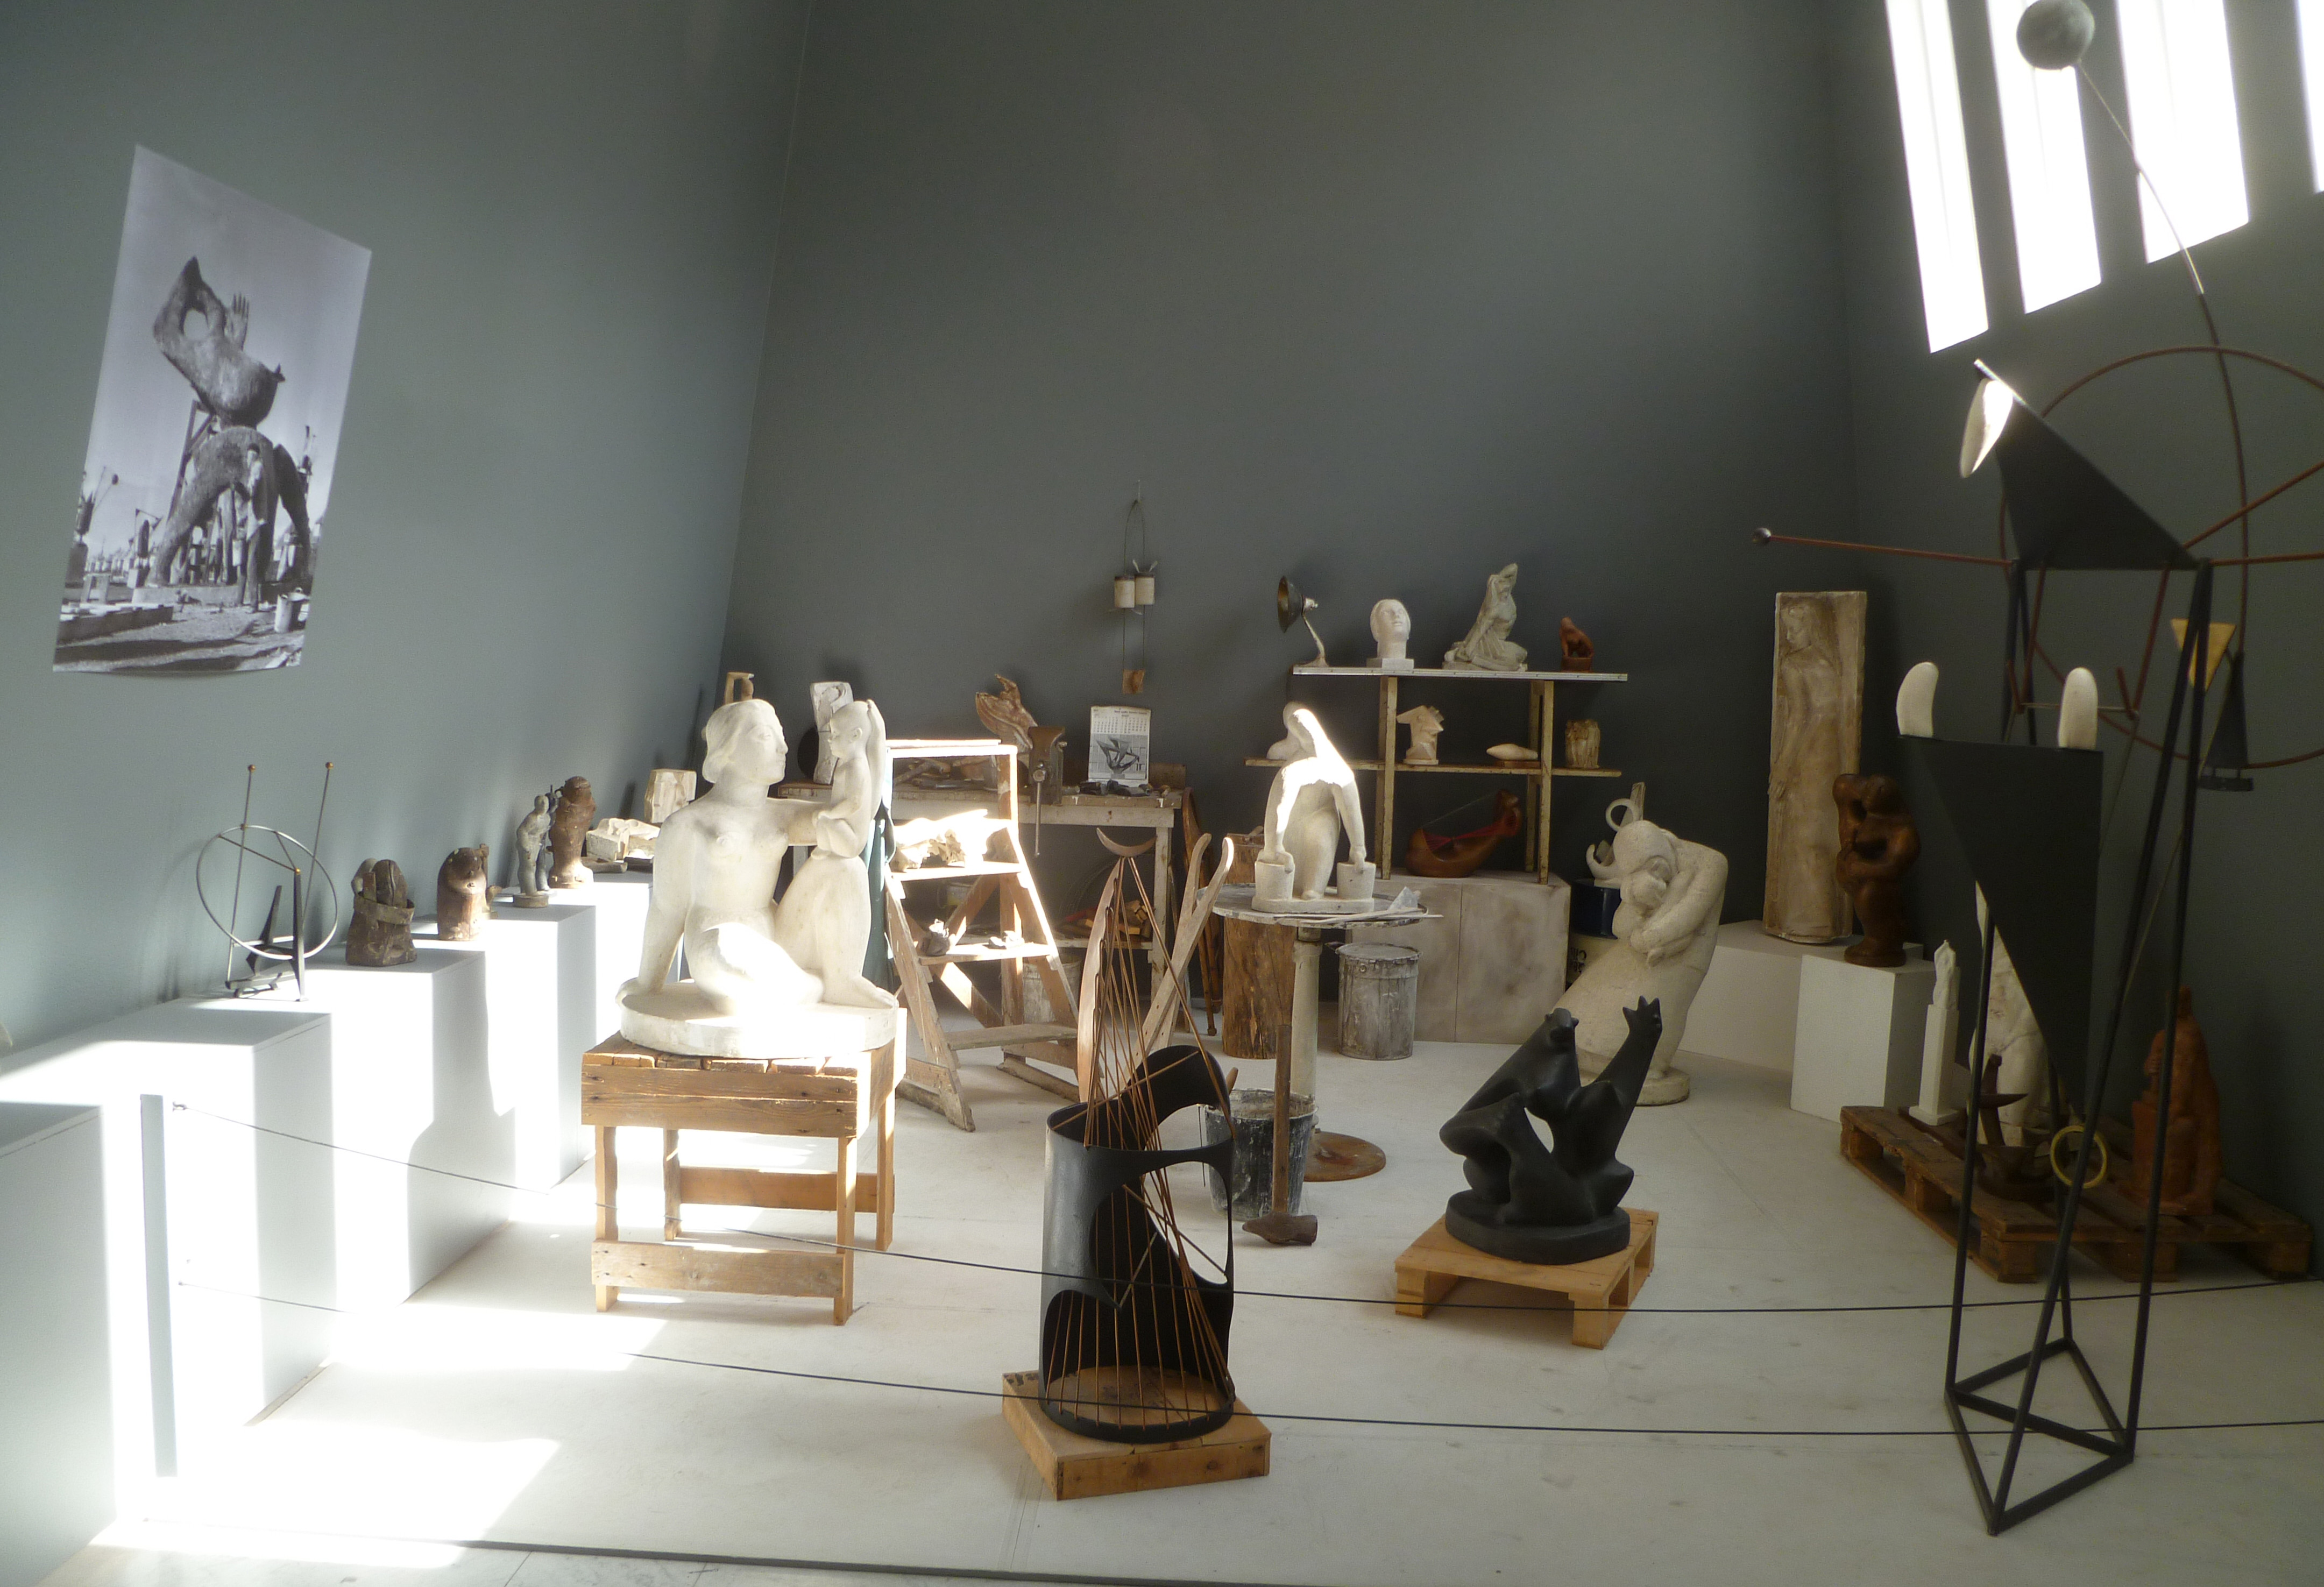 Sveinsson's Studio at the Asmundarsafn Museum